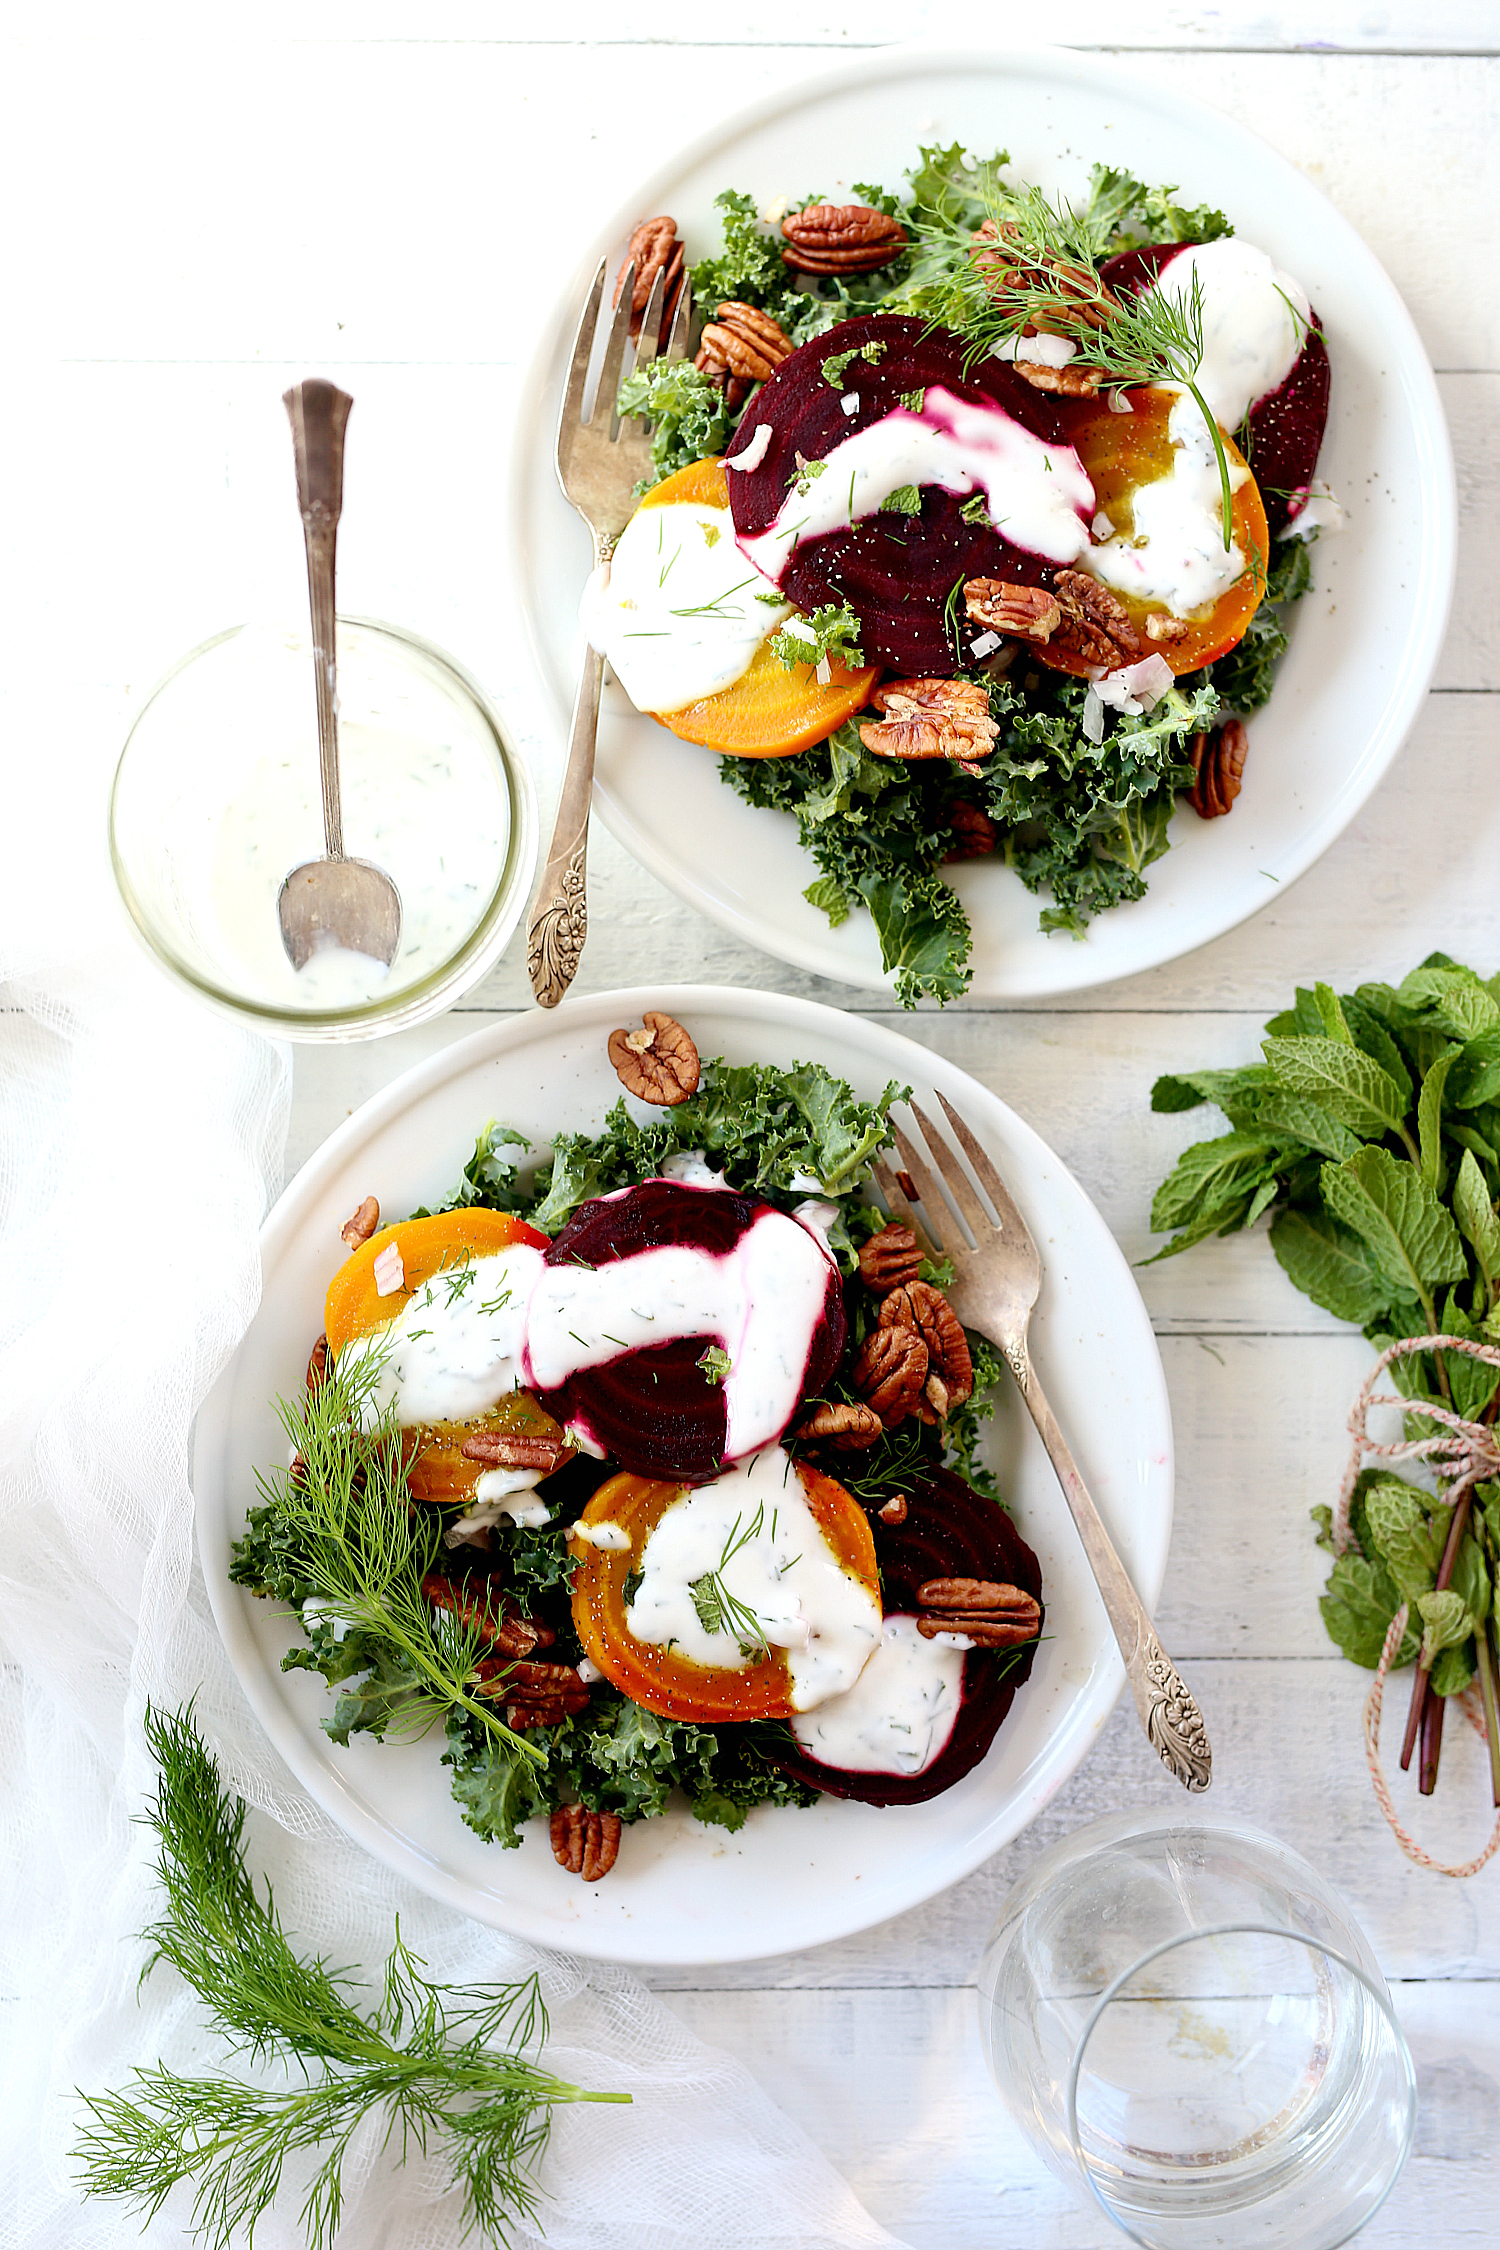 Roasted Beet Kale Salad With Herb Infused Non-Fat Greek Yogurt Dressing! A Greek yogurt dressing that you will want on every meat or vegetarianveggie dish!